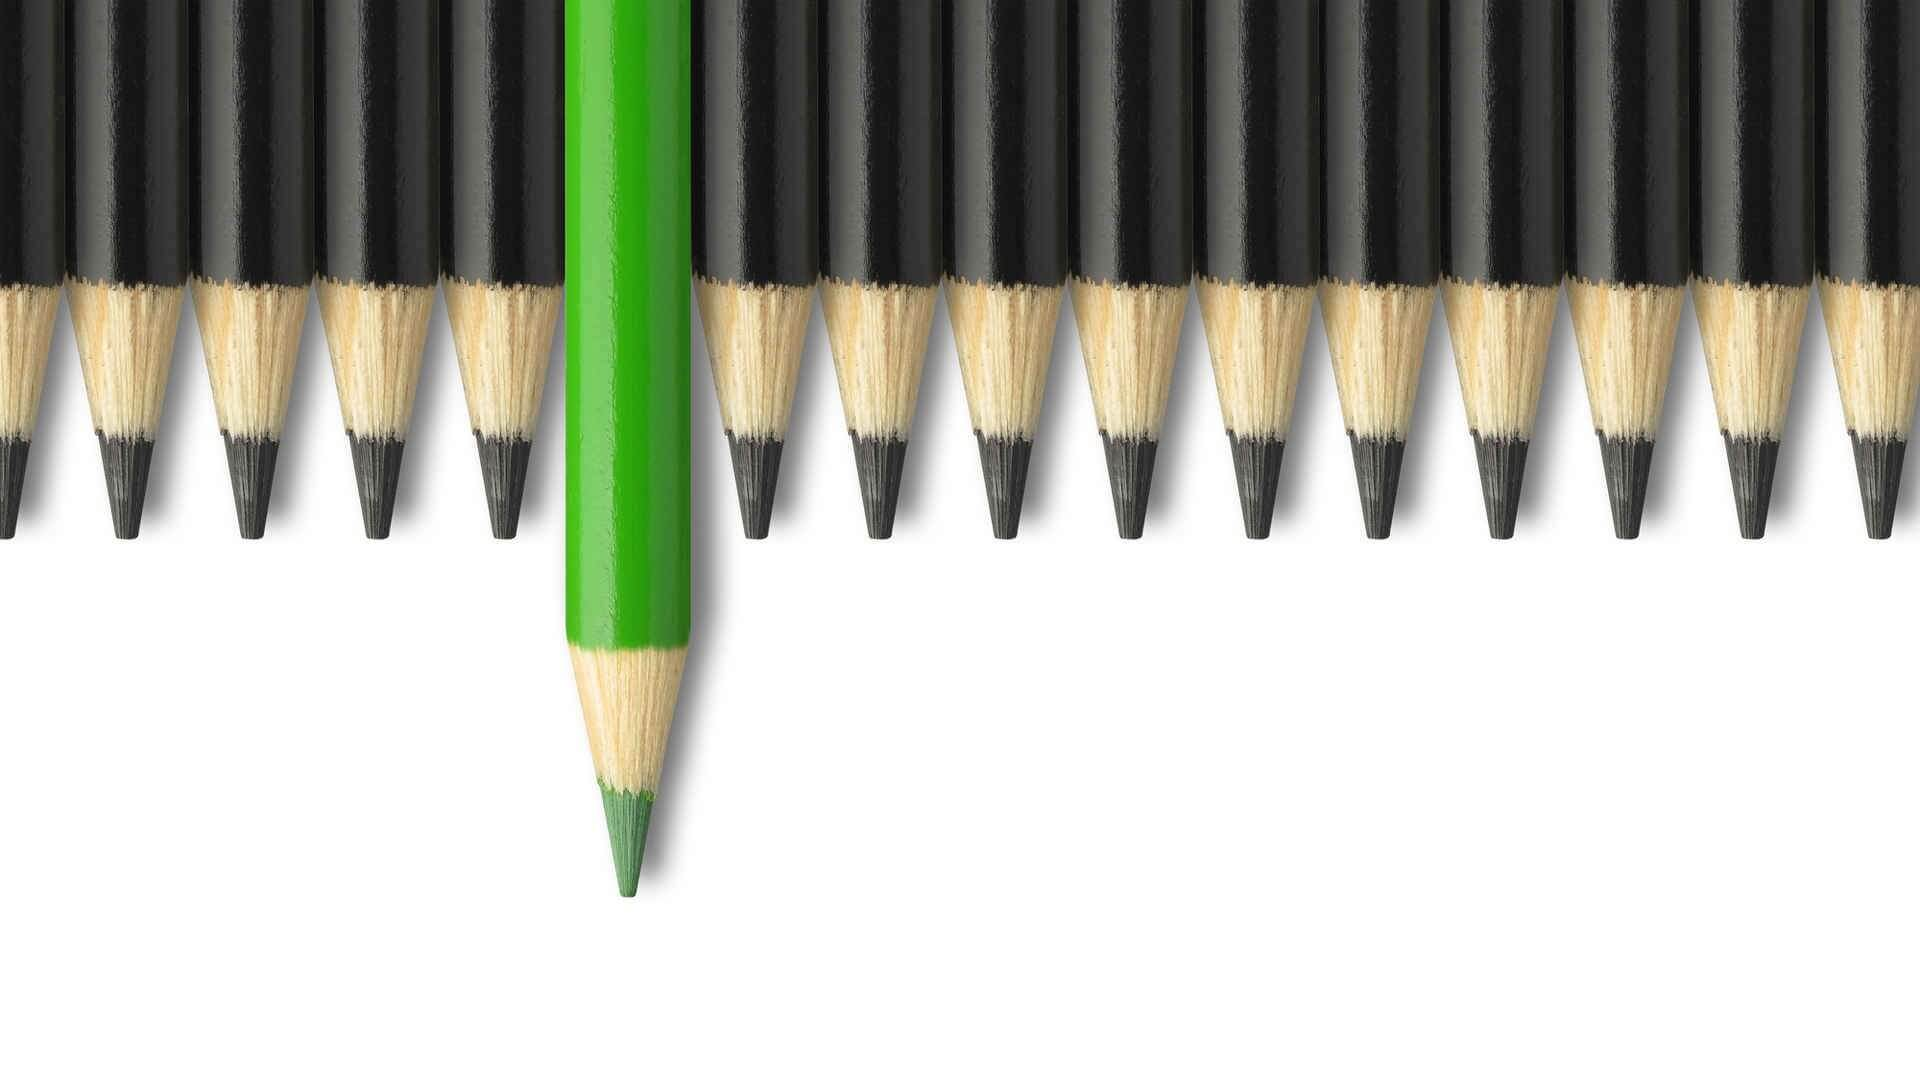 Green pencil standing out from crowd of black pencils